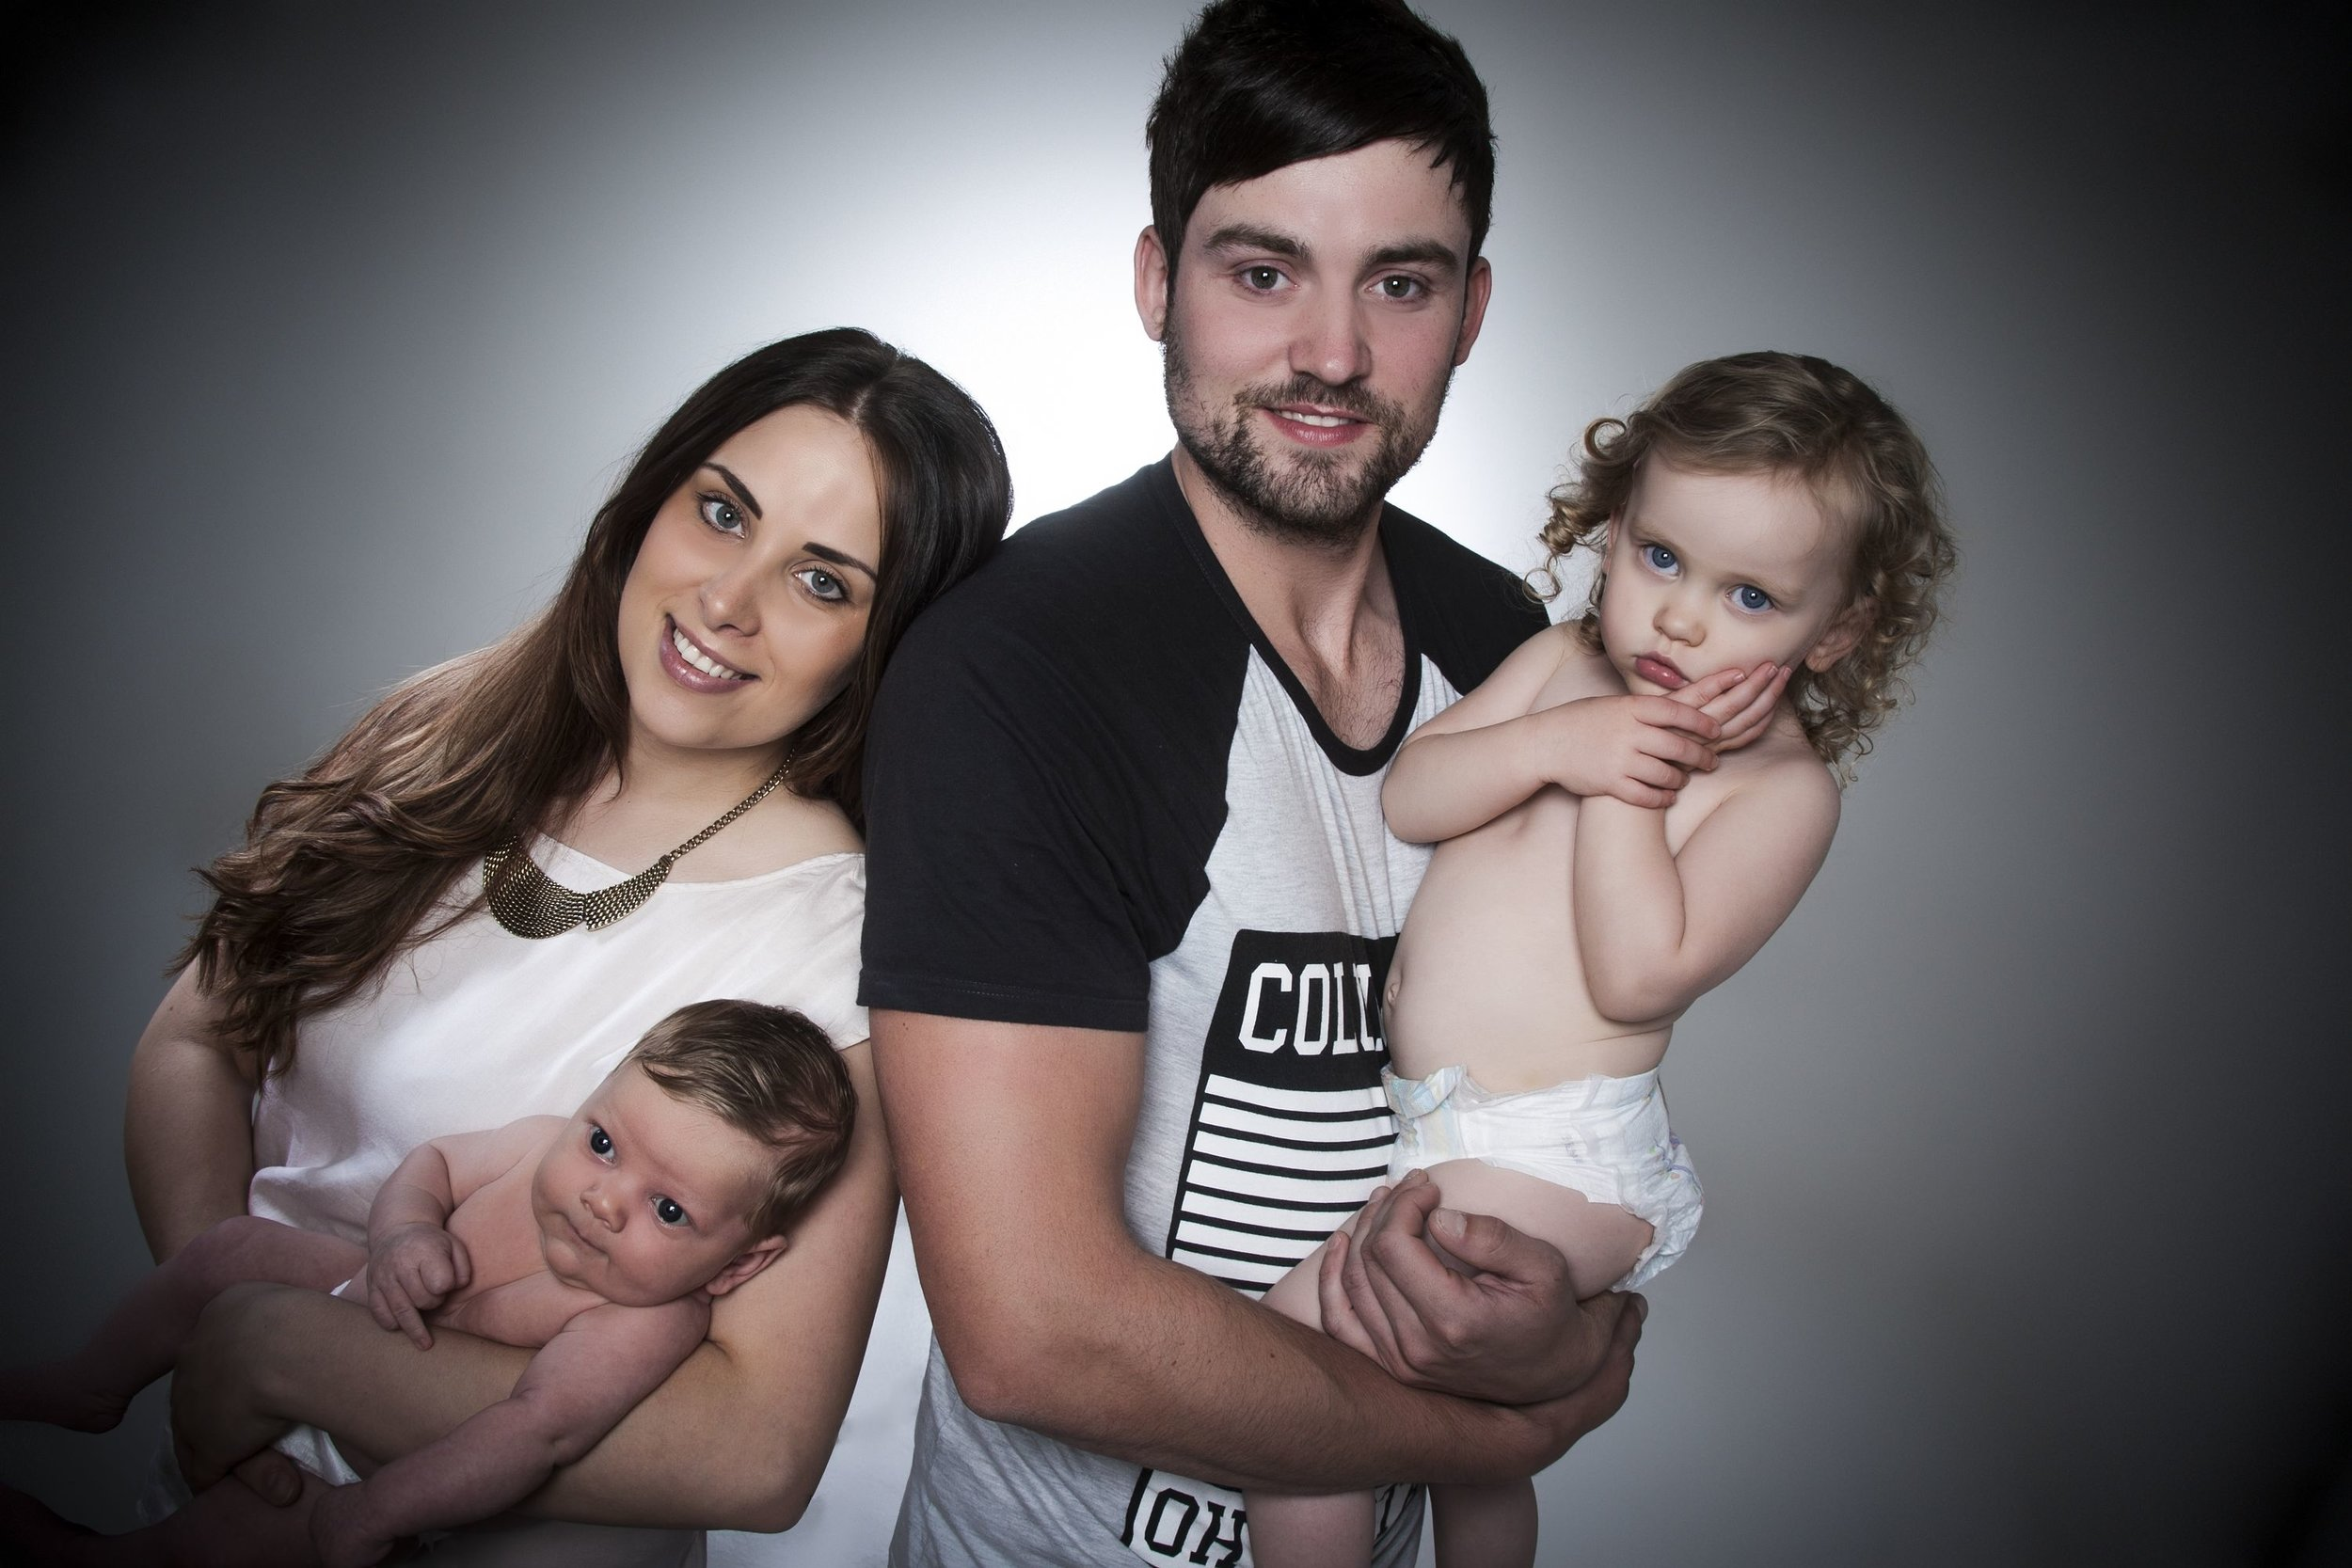 Zigzag-photography-venture-studios-leicester-bump-photos-ideas-portraits-family-mum-dad-kids